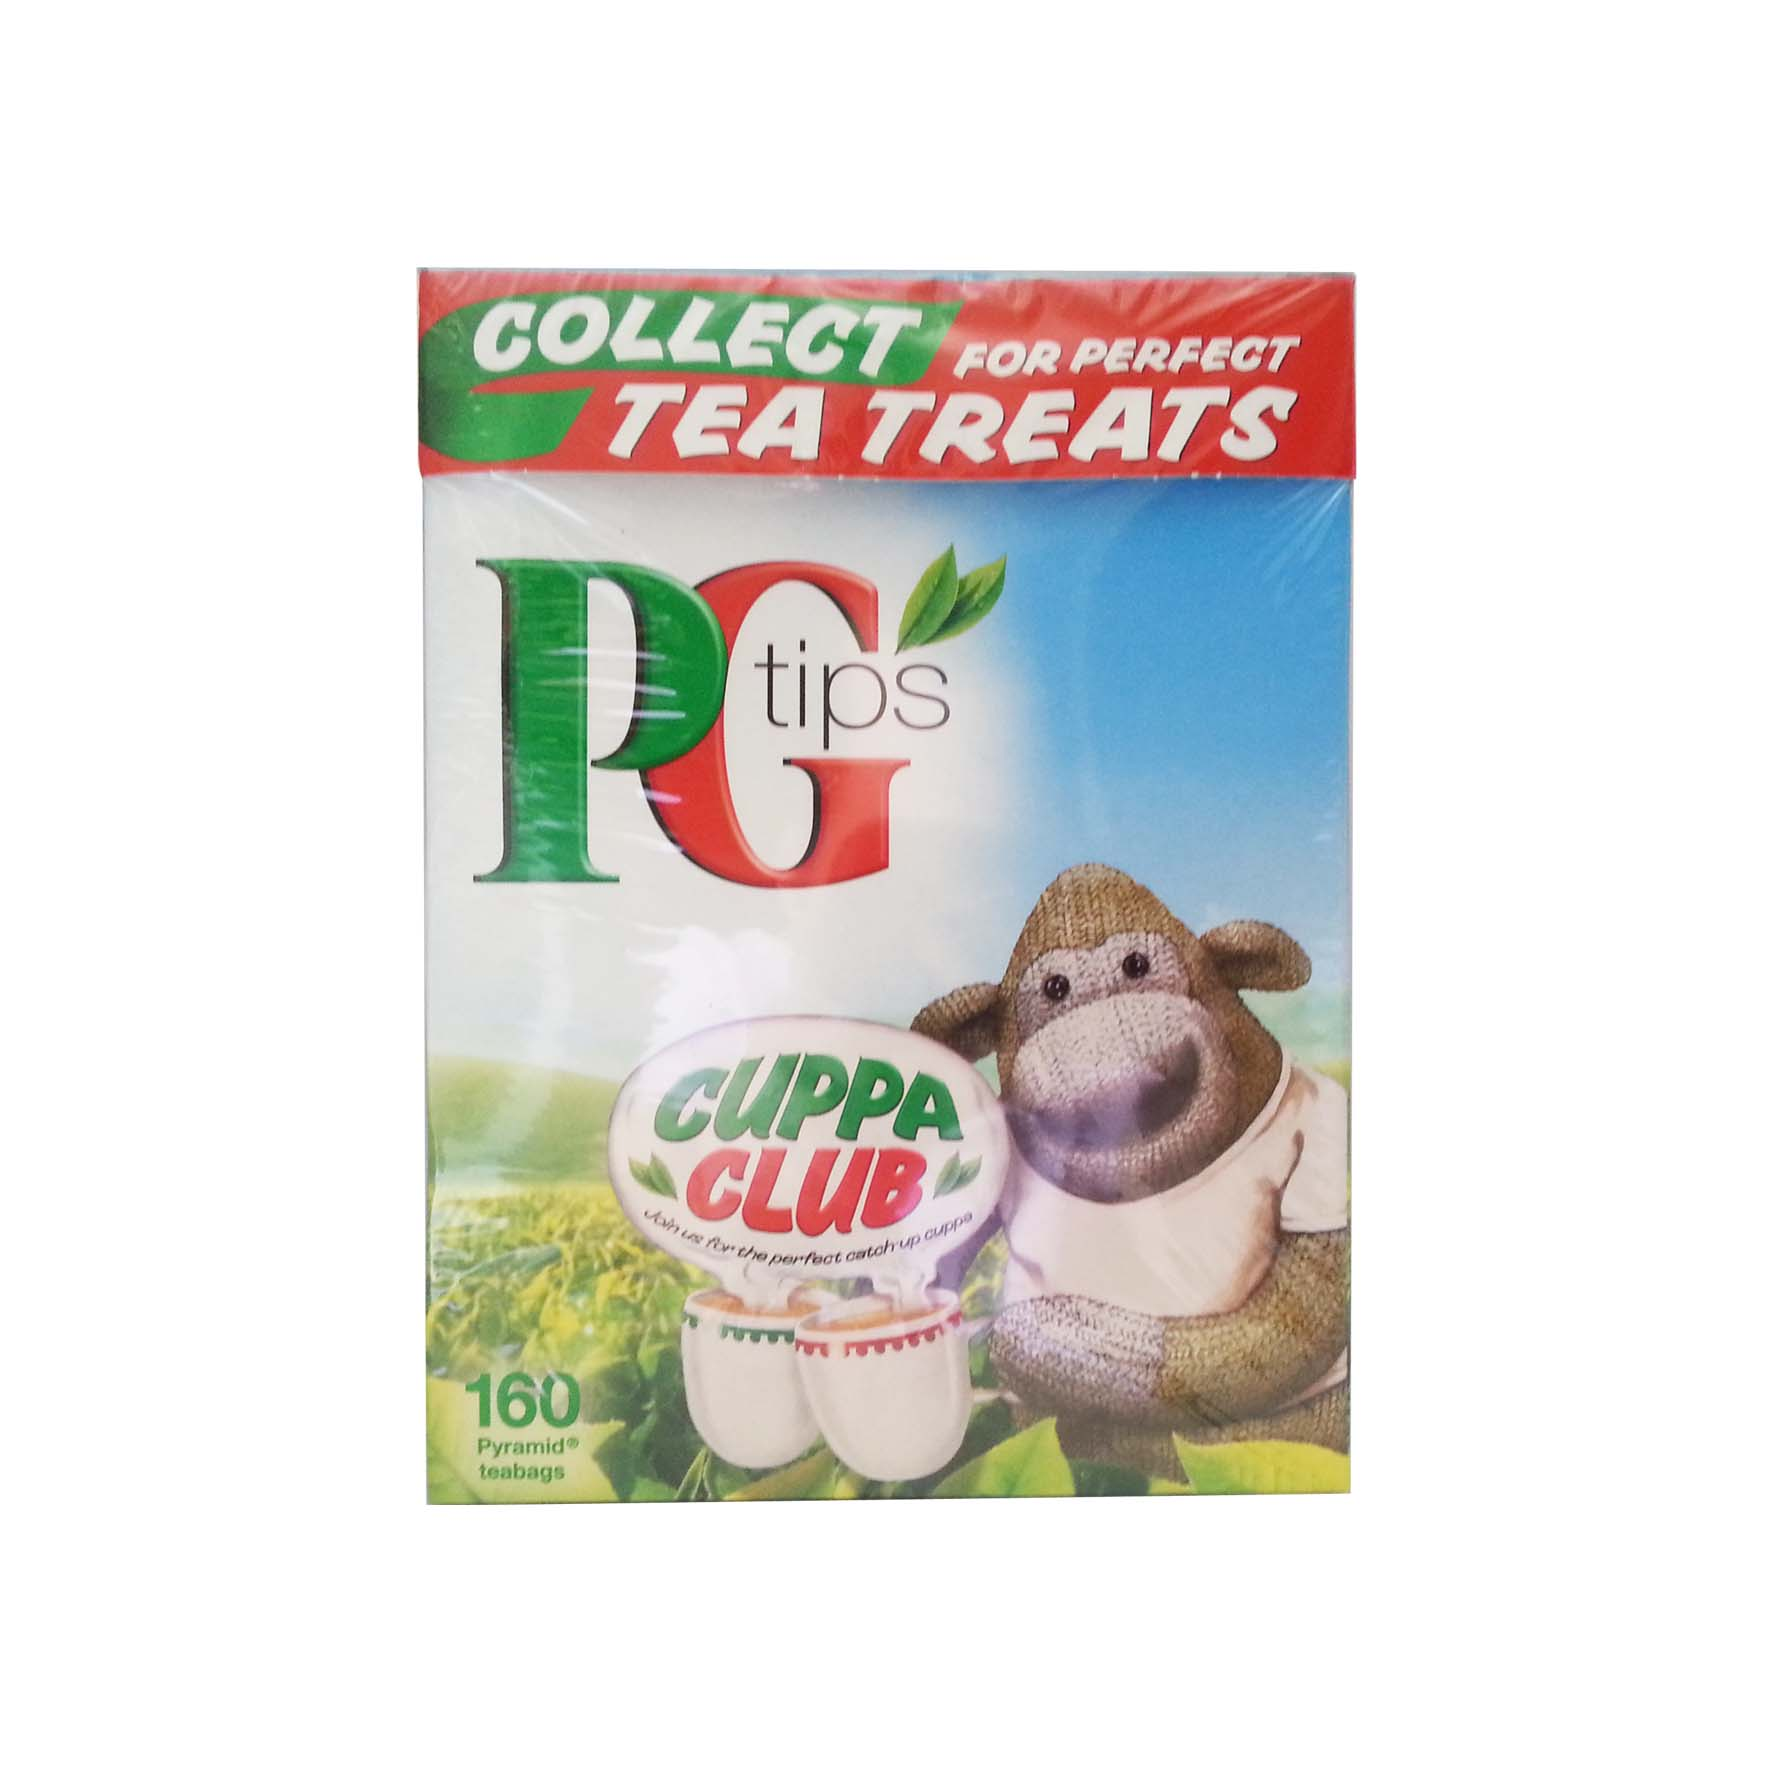 Pg tips te piramidales 160 bolsas